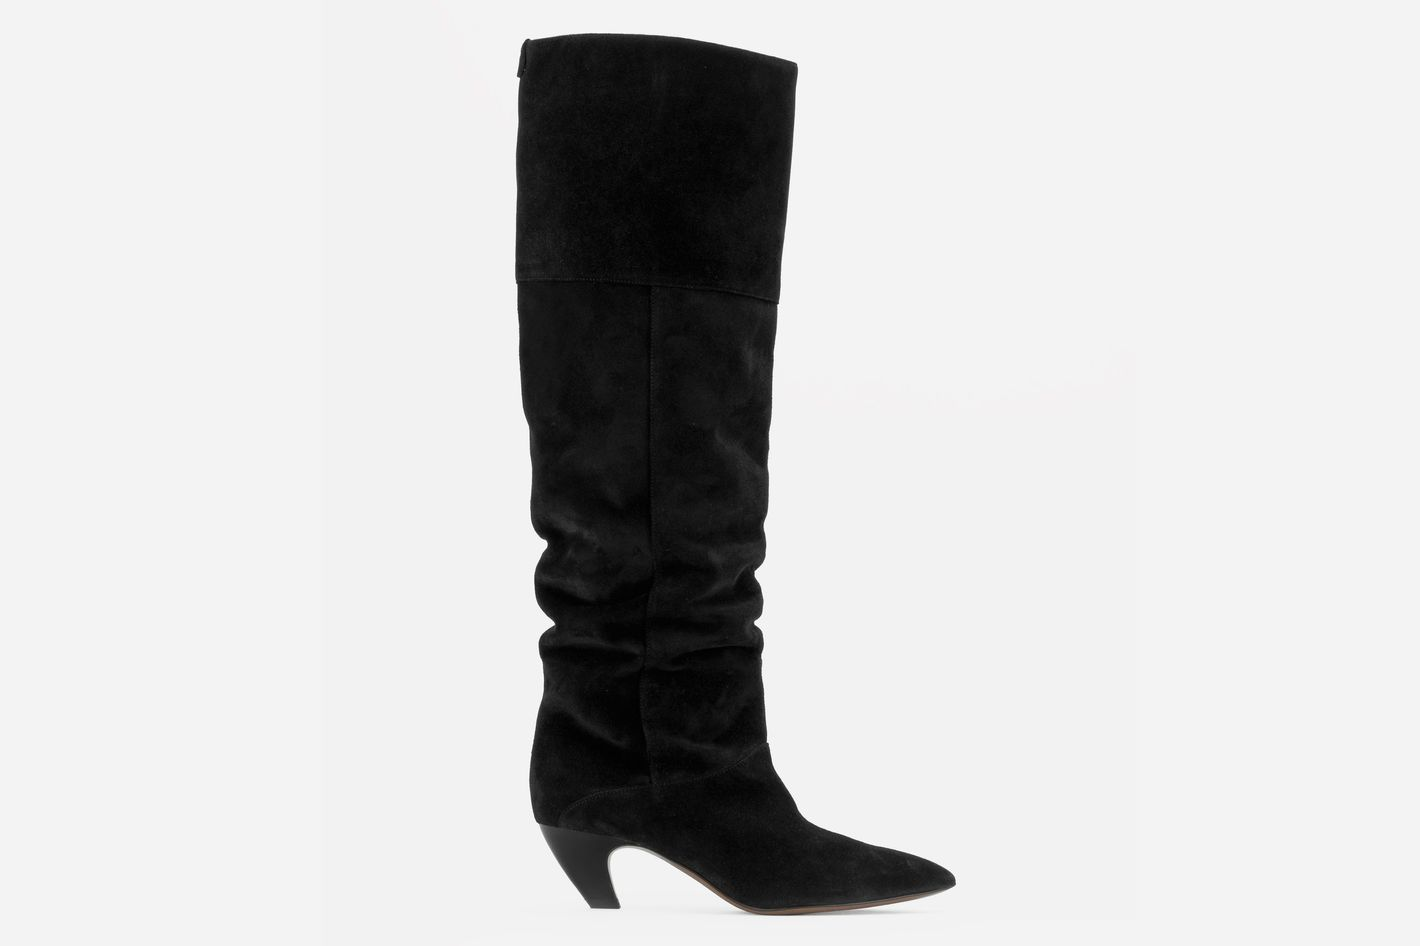 Babs boots in black suede